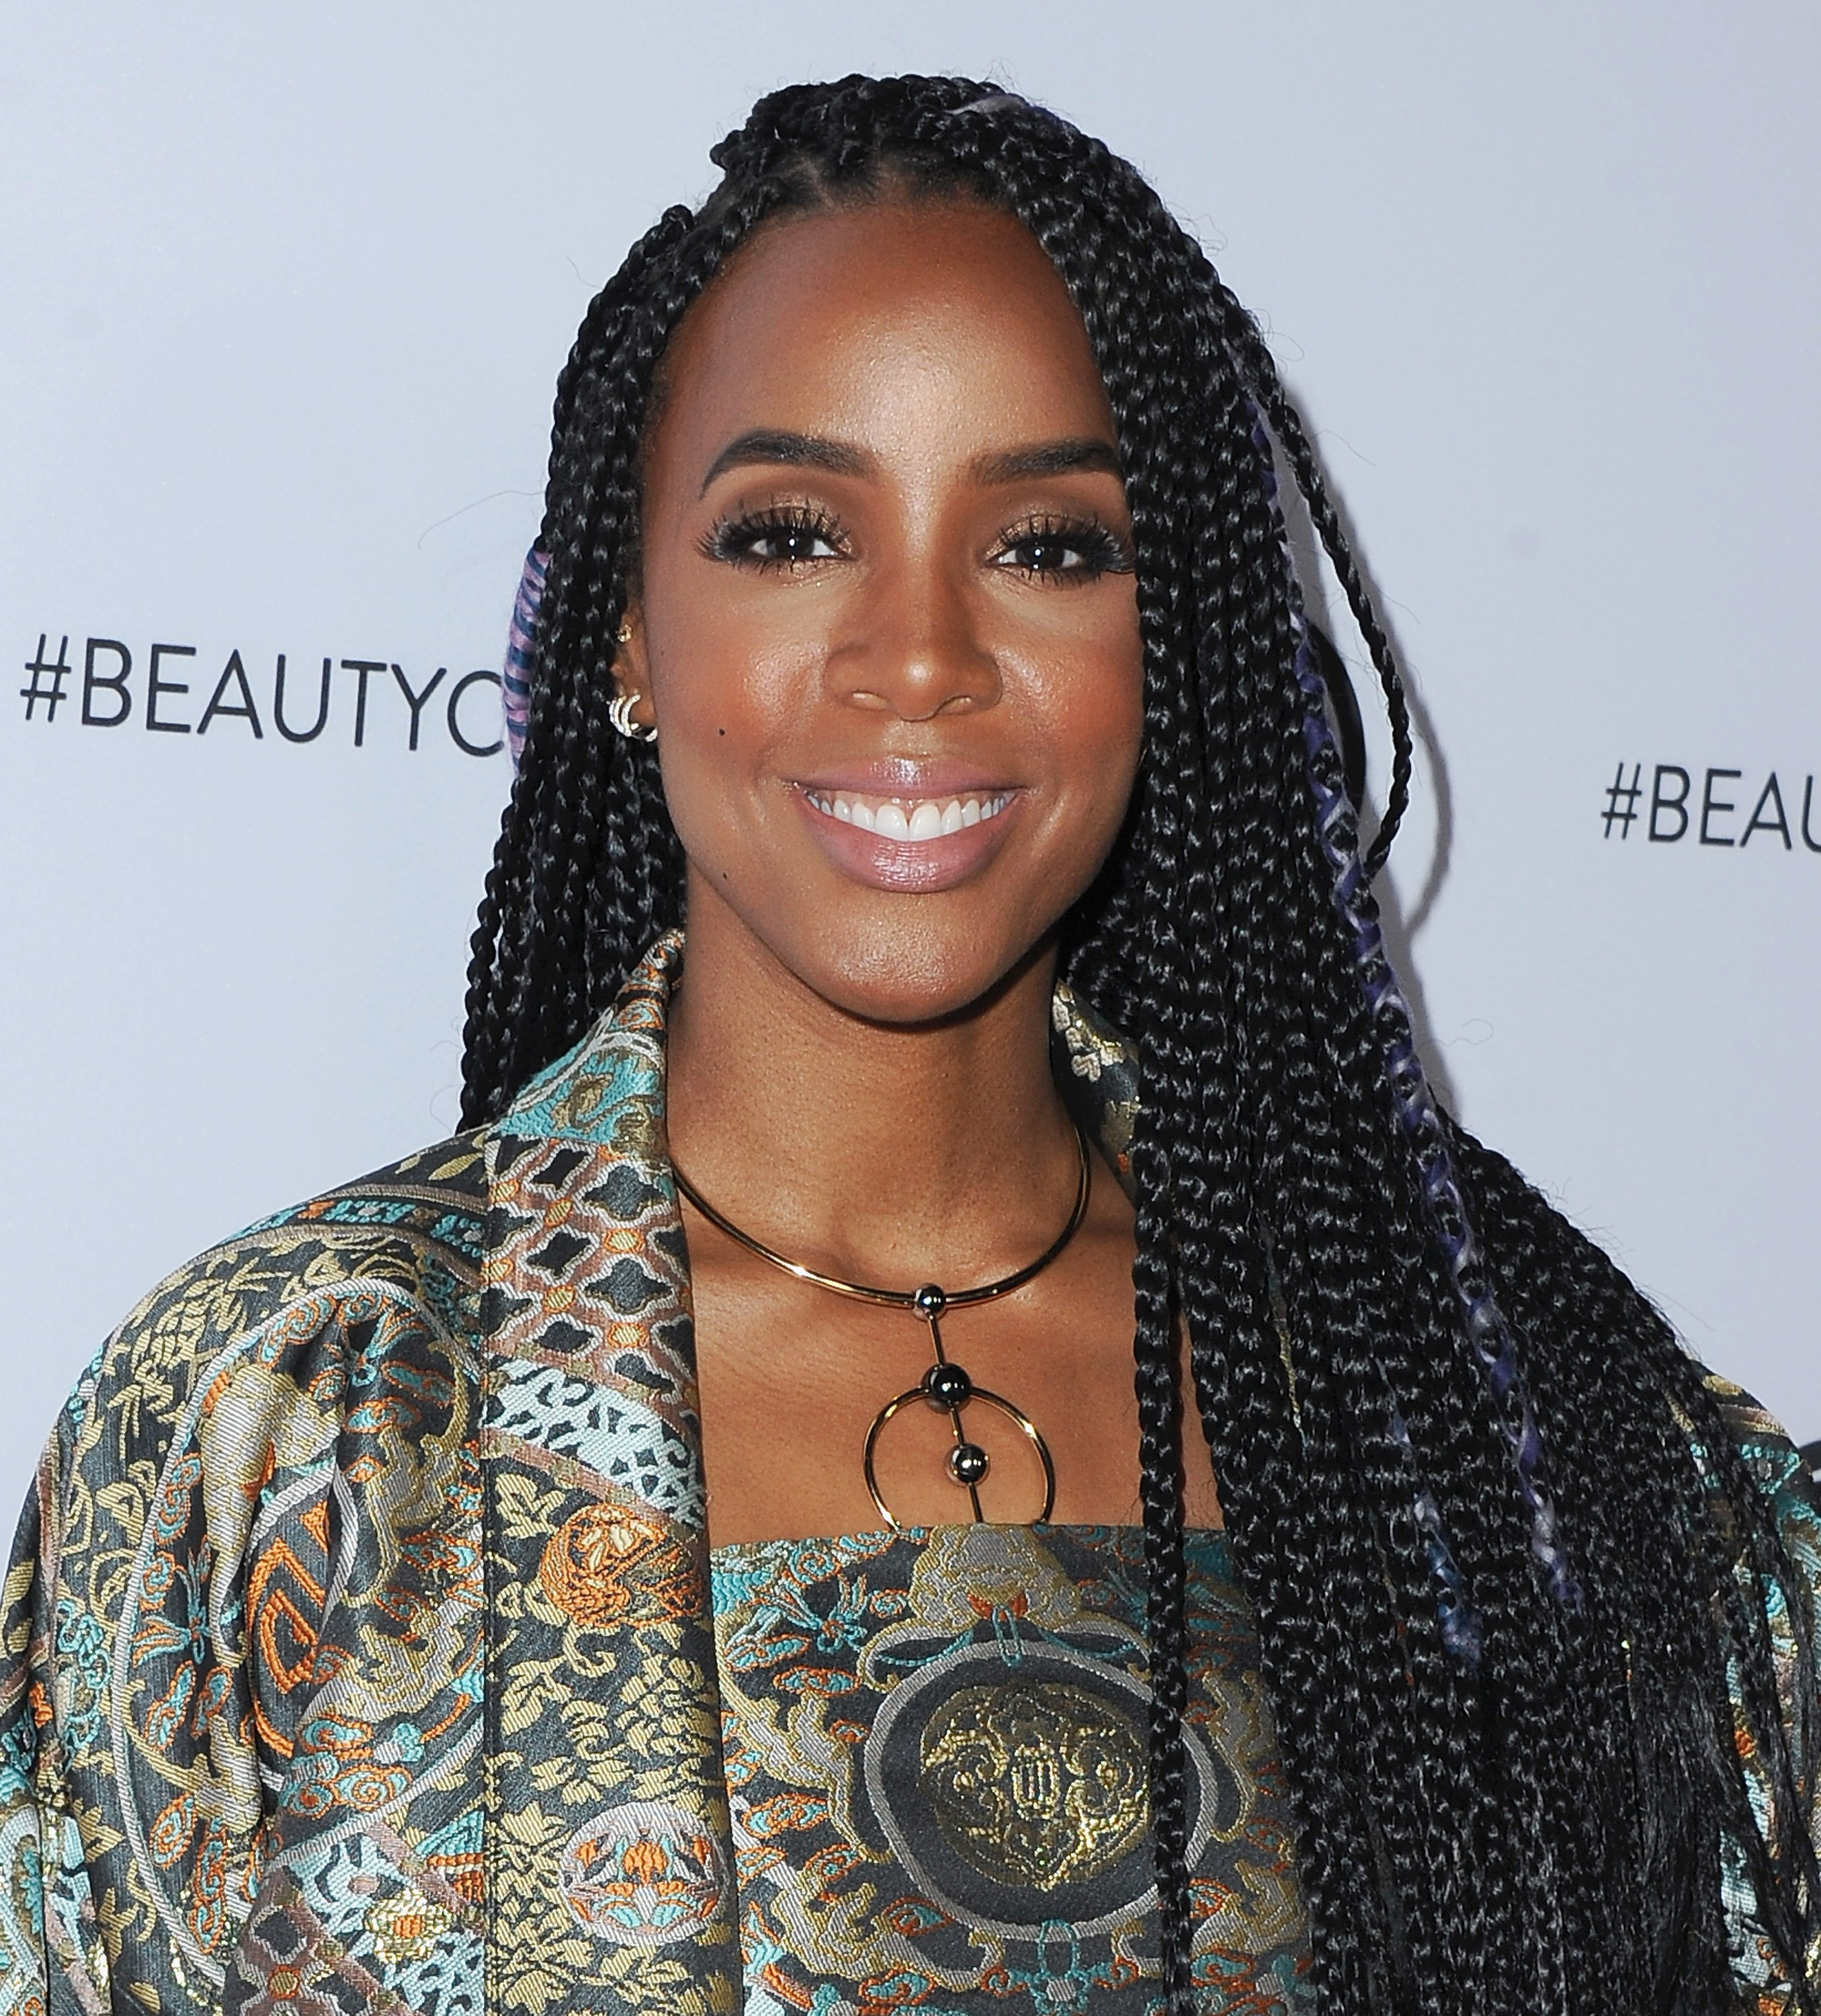 Kelly Rowland at the 5th Annual Beautycon Festival in Los Angeles, California, 2017 | Source: Getty Images